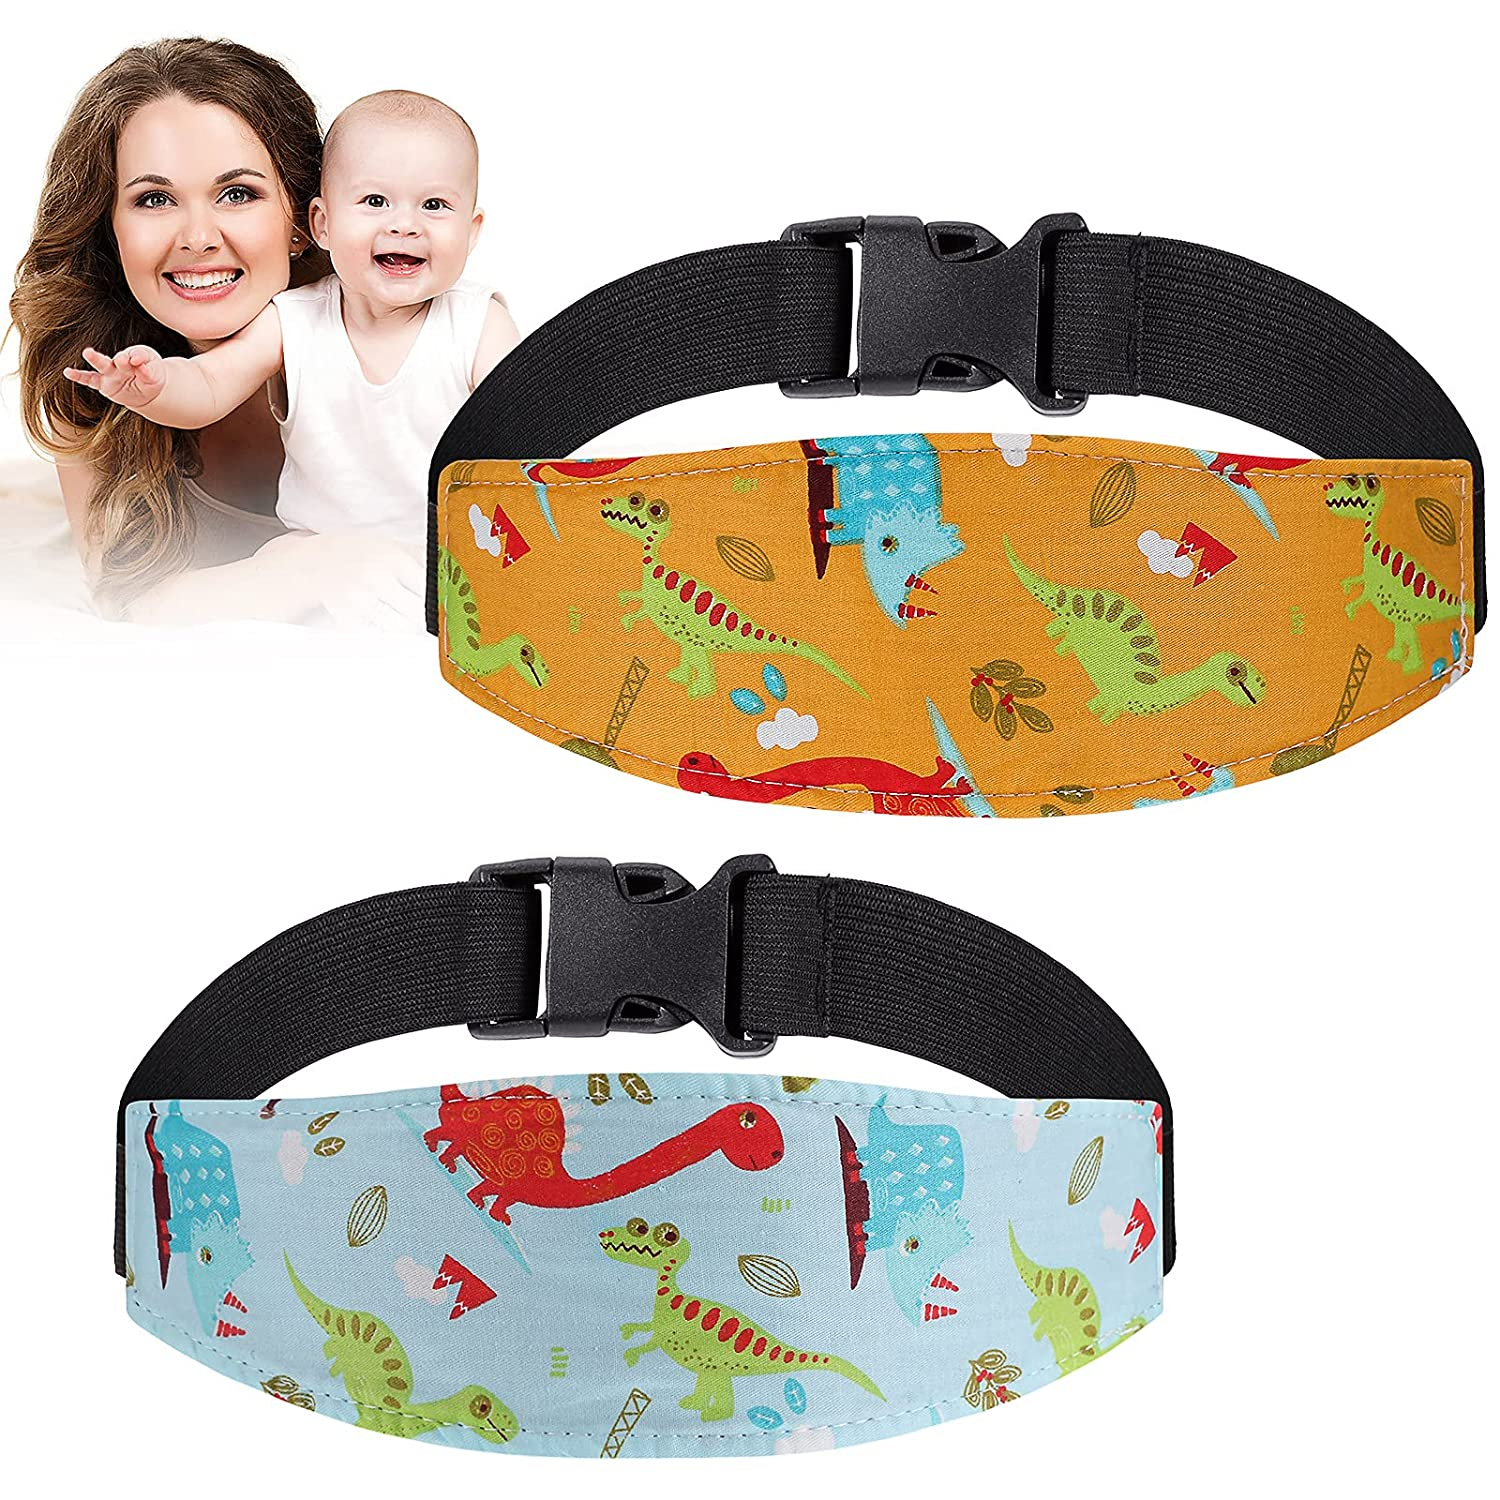 2 Pieces Baby Head Strap for Car Seat Toddler Baby Carseat Head Support Stroller Neck Relief Head Band Sleeping Baby Headband Head Support Band for Toddler Child Kids Infant Travel